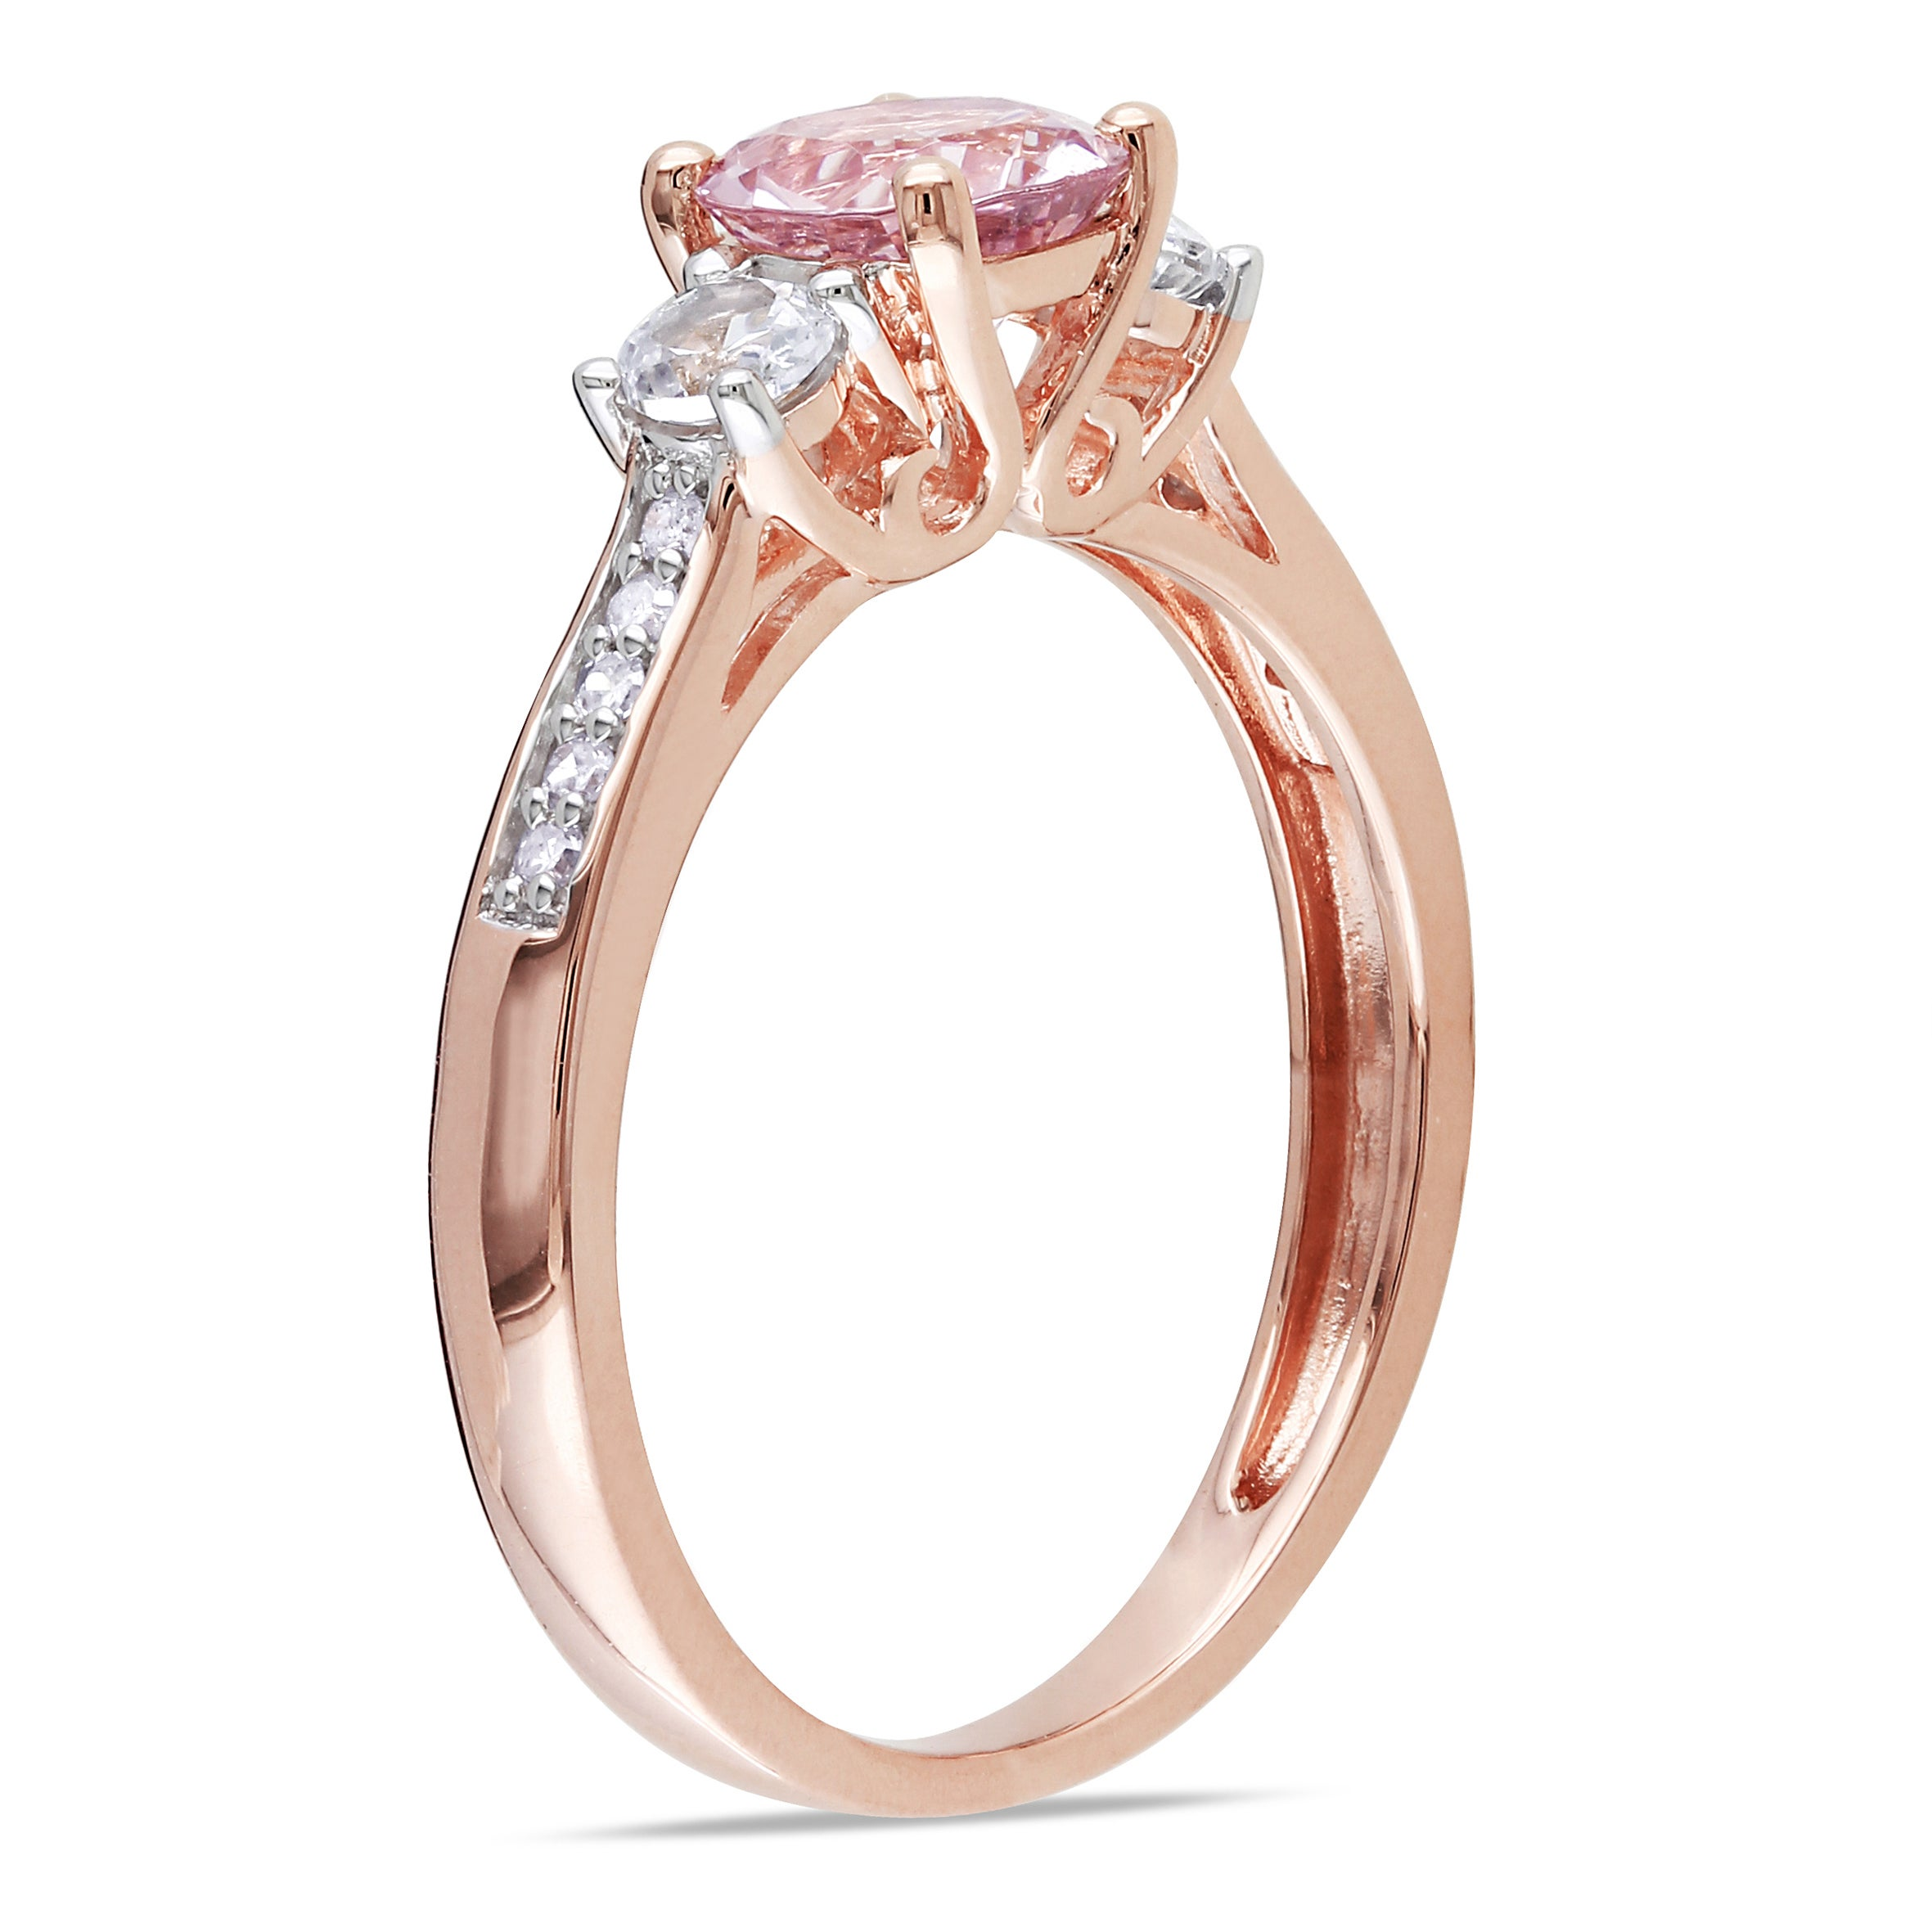 rings shank g today product split jewelry morganite tw h watches rose gold ring pink overstock free and shipping cut diamond